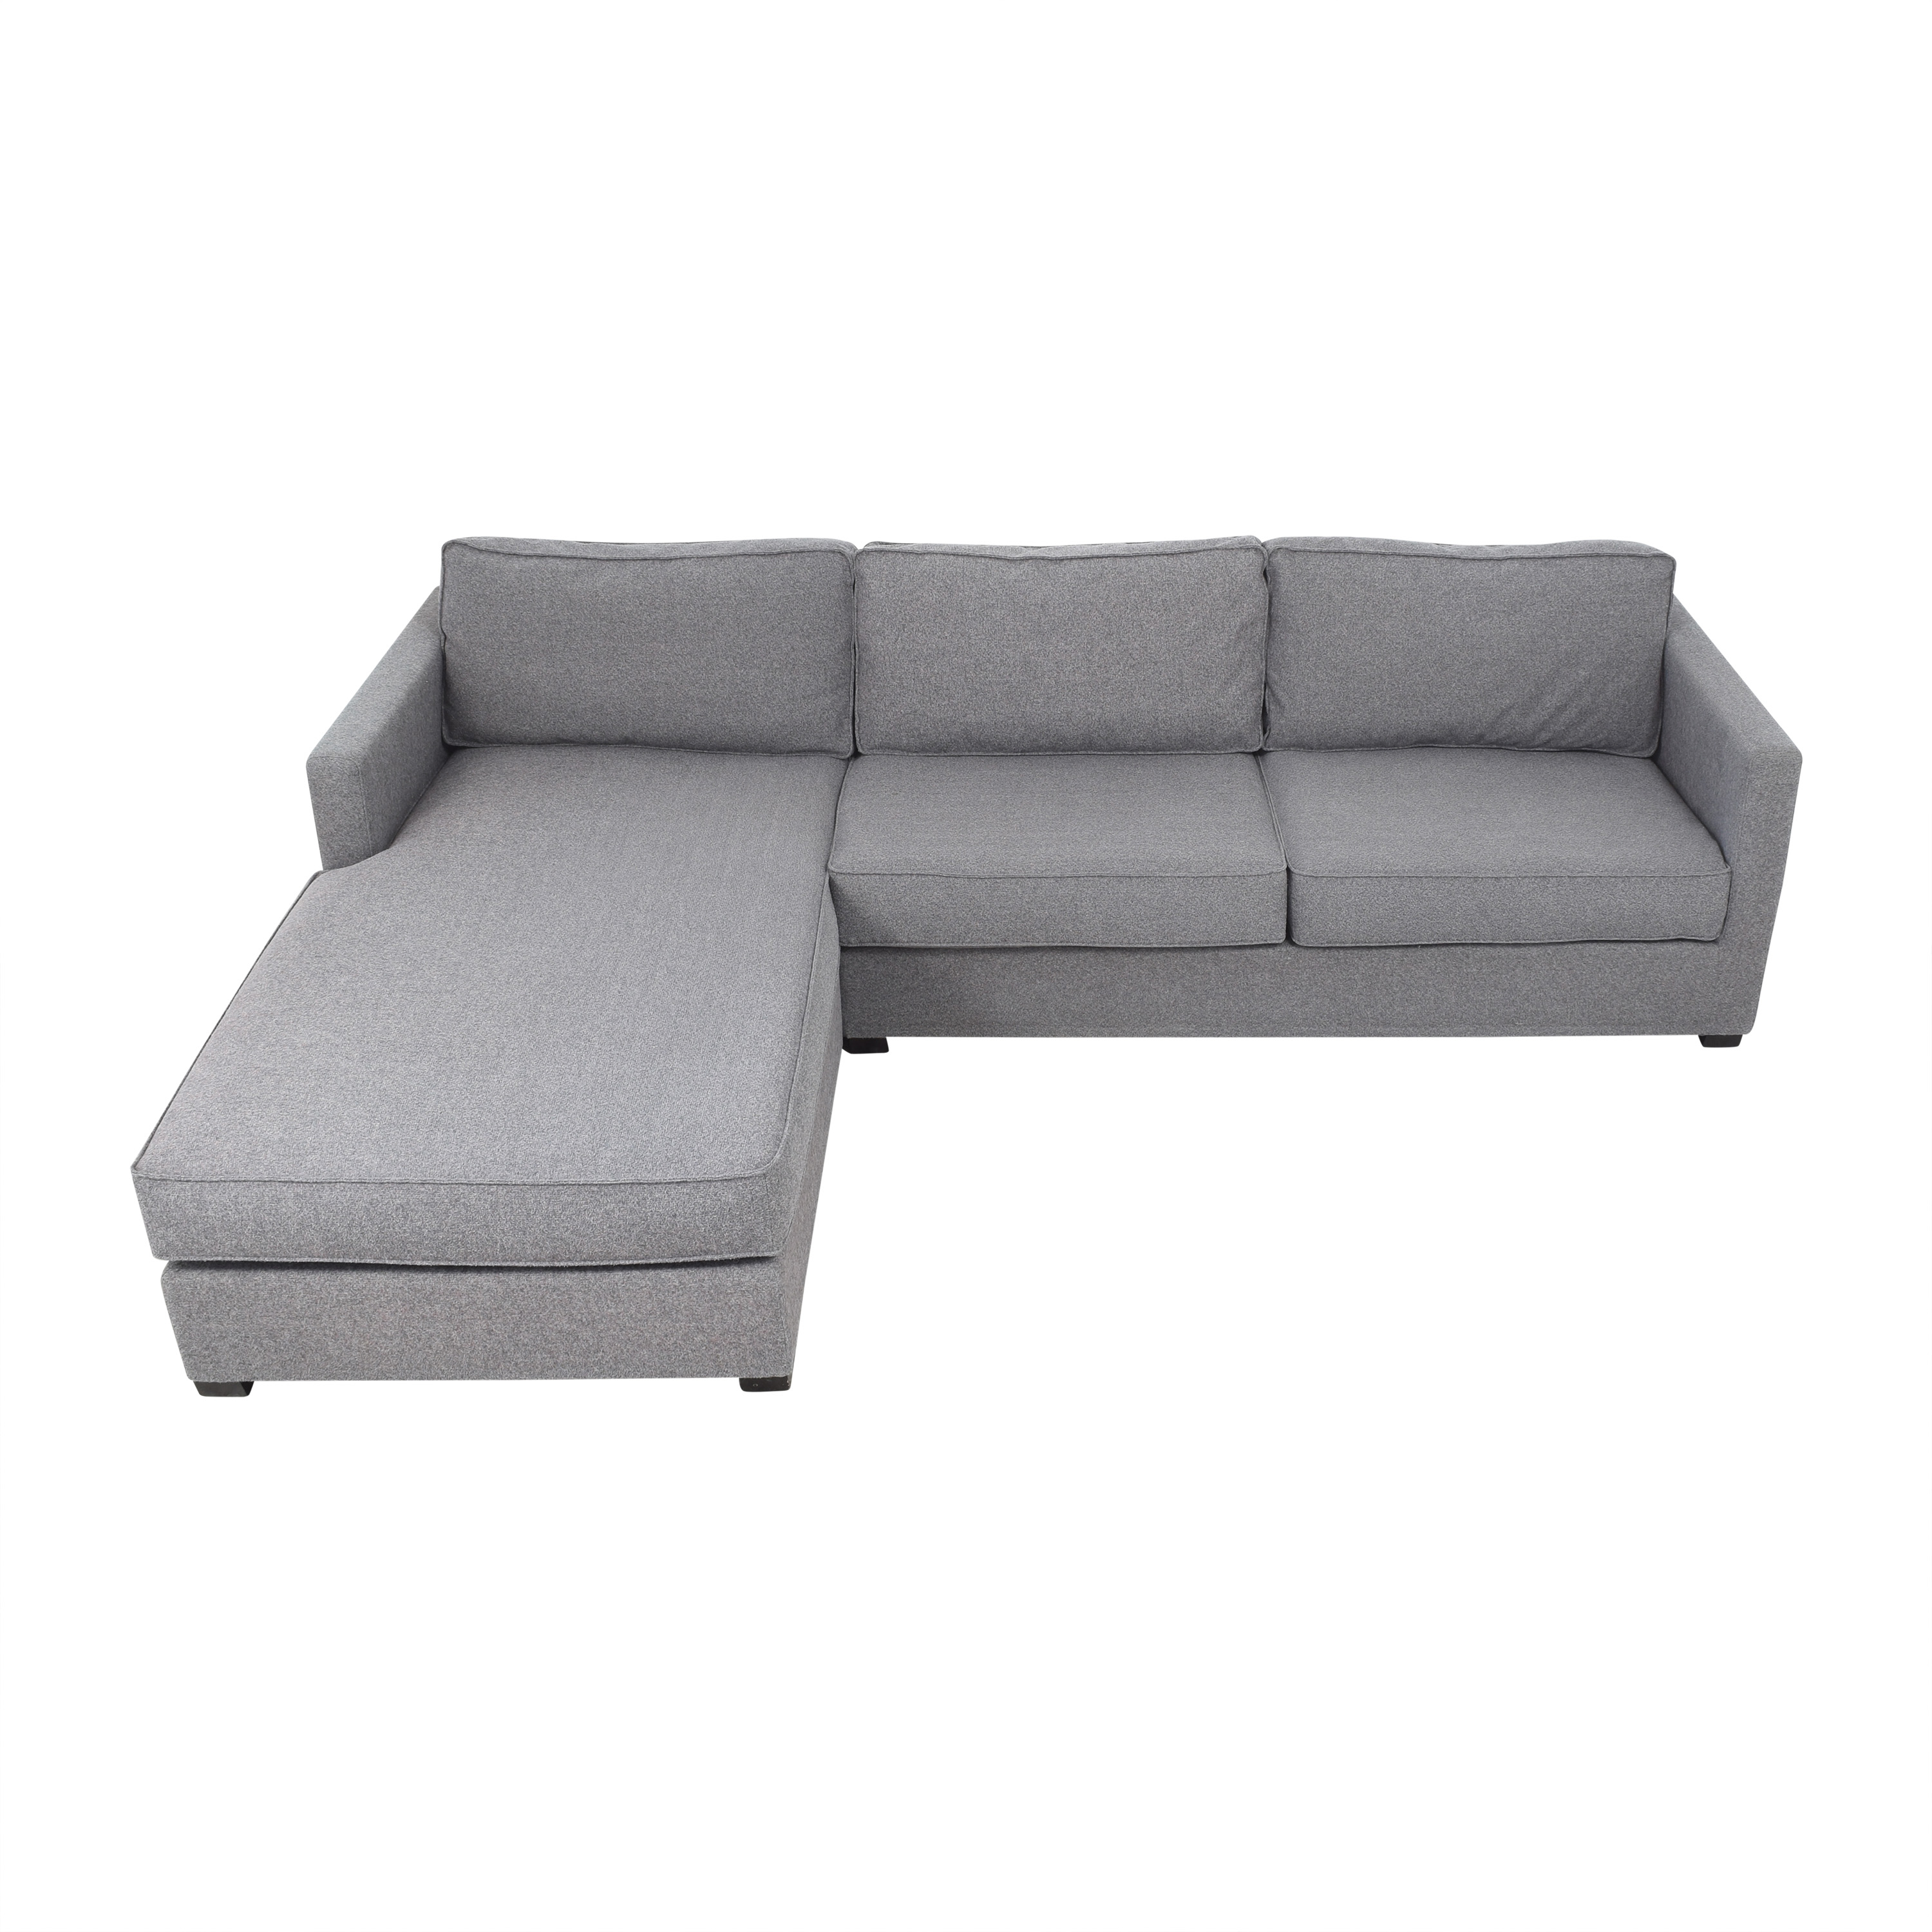 A & G Merch A & G Merch Two Piece Sectional Sofa with Chaise nyc